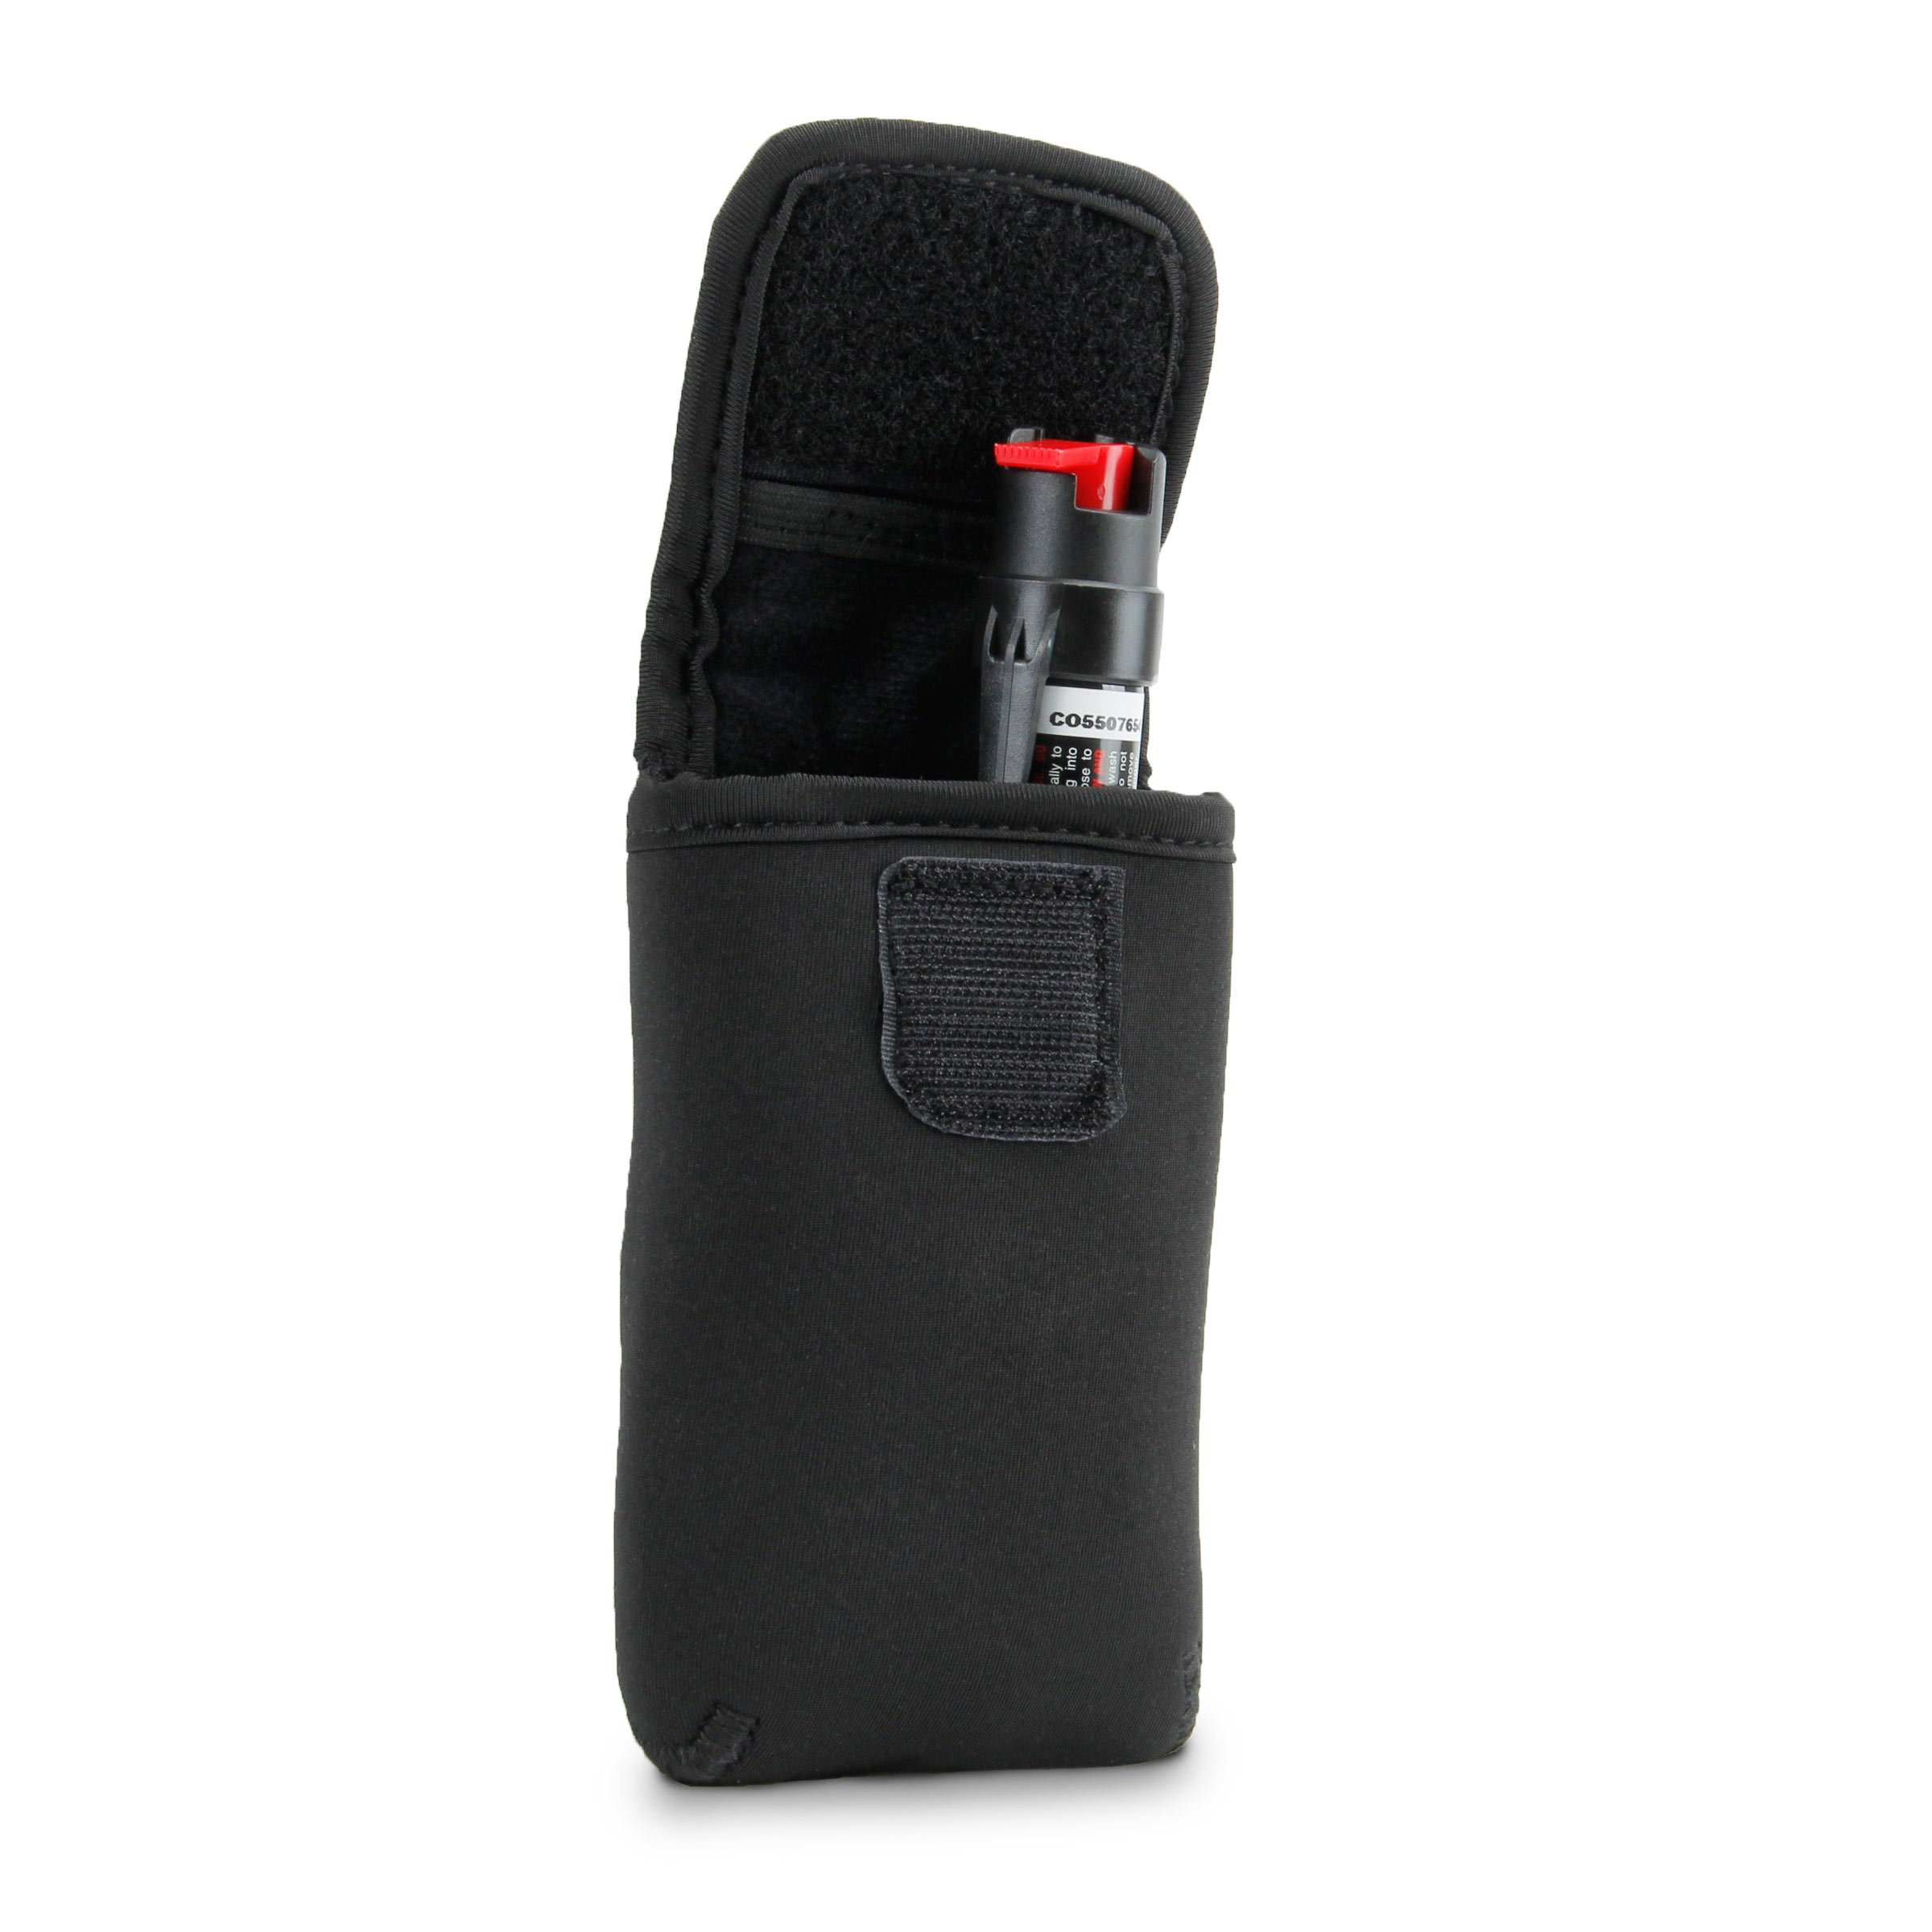 Pepper Spray Mace Carrying Holster Belt Loop by USA Gear - Stores SABRE 3-IN-1 Pepper Spray , Police Magnum OC Pepper Spray , Mace Pepper Gel and More by USA Gear